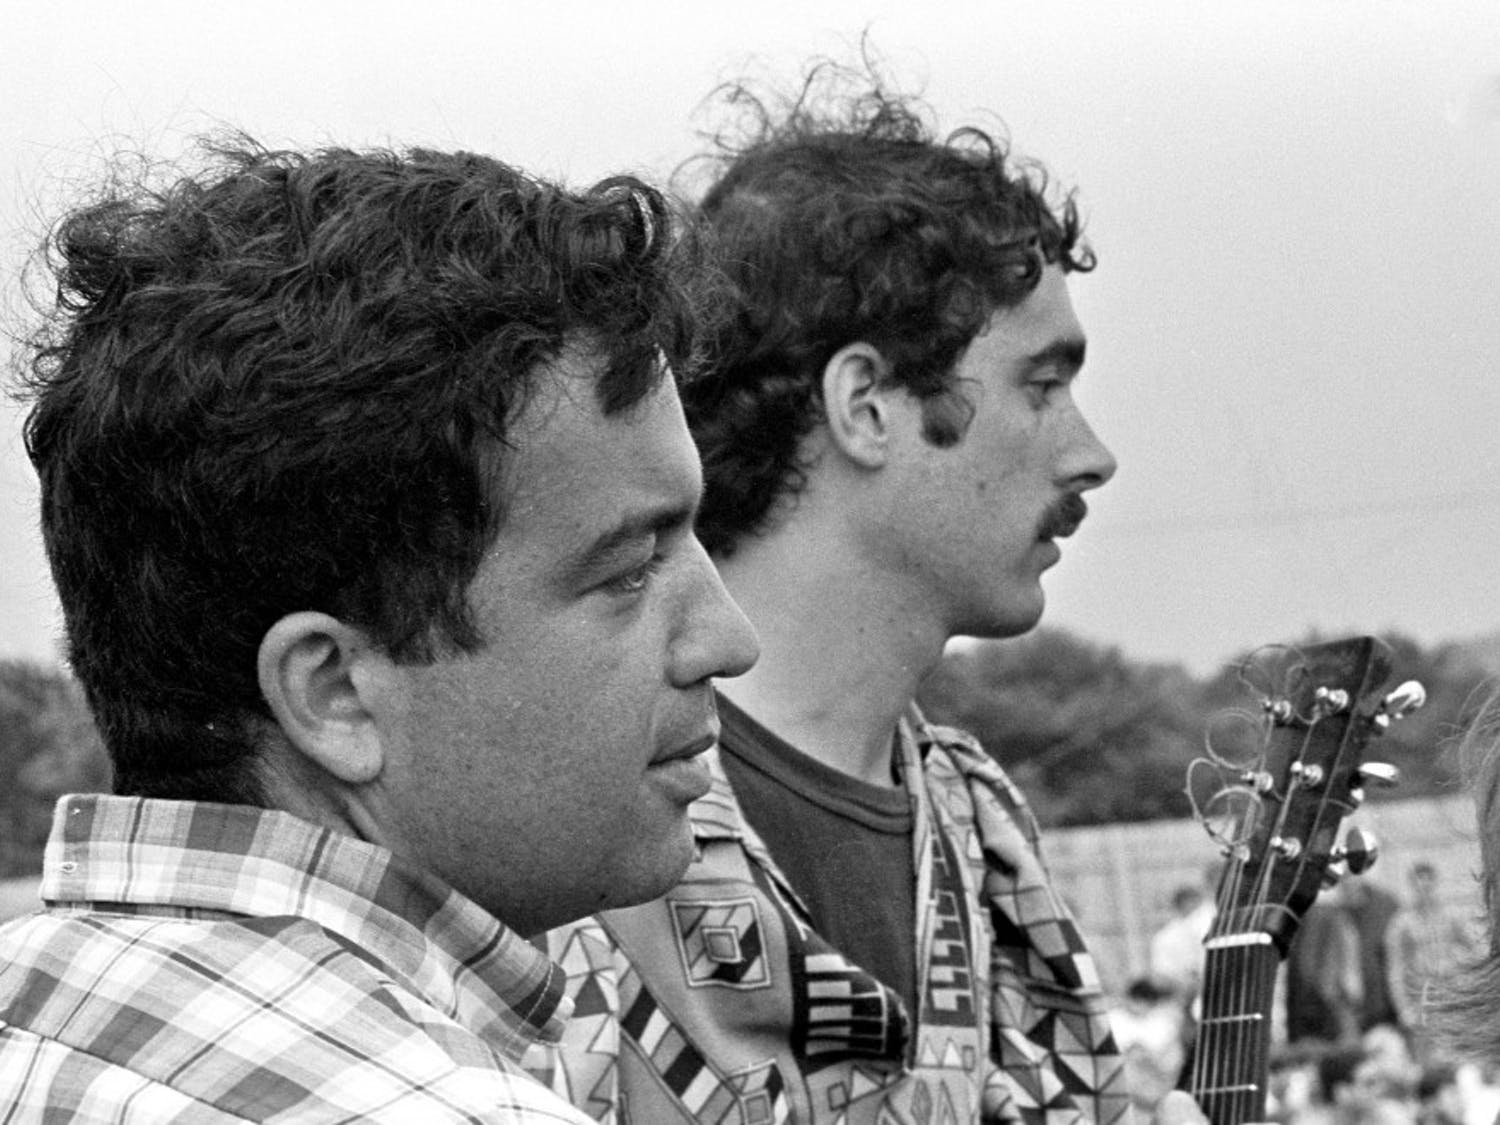 Professor Bruce Jackson (left) chats with Jim Kweskin (right) at the 1967 Newport Folk Festival. Jackson was on the festival board from 1965 to 1968. He claims that fans didn't boo Bob Dylan during his infamous 1965 festival performance.